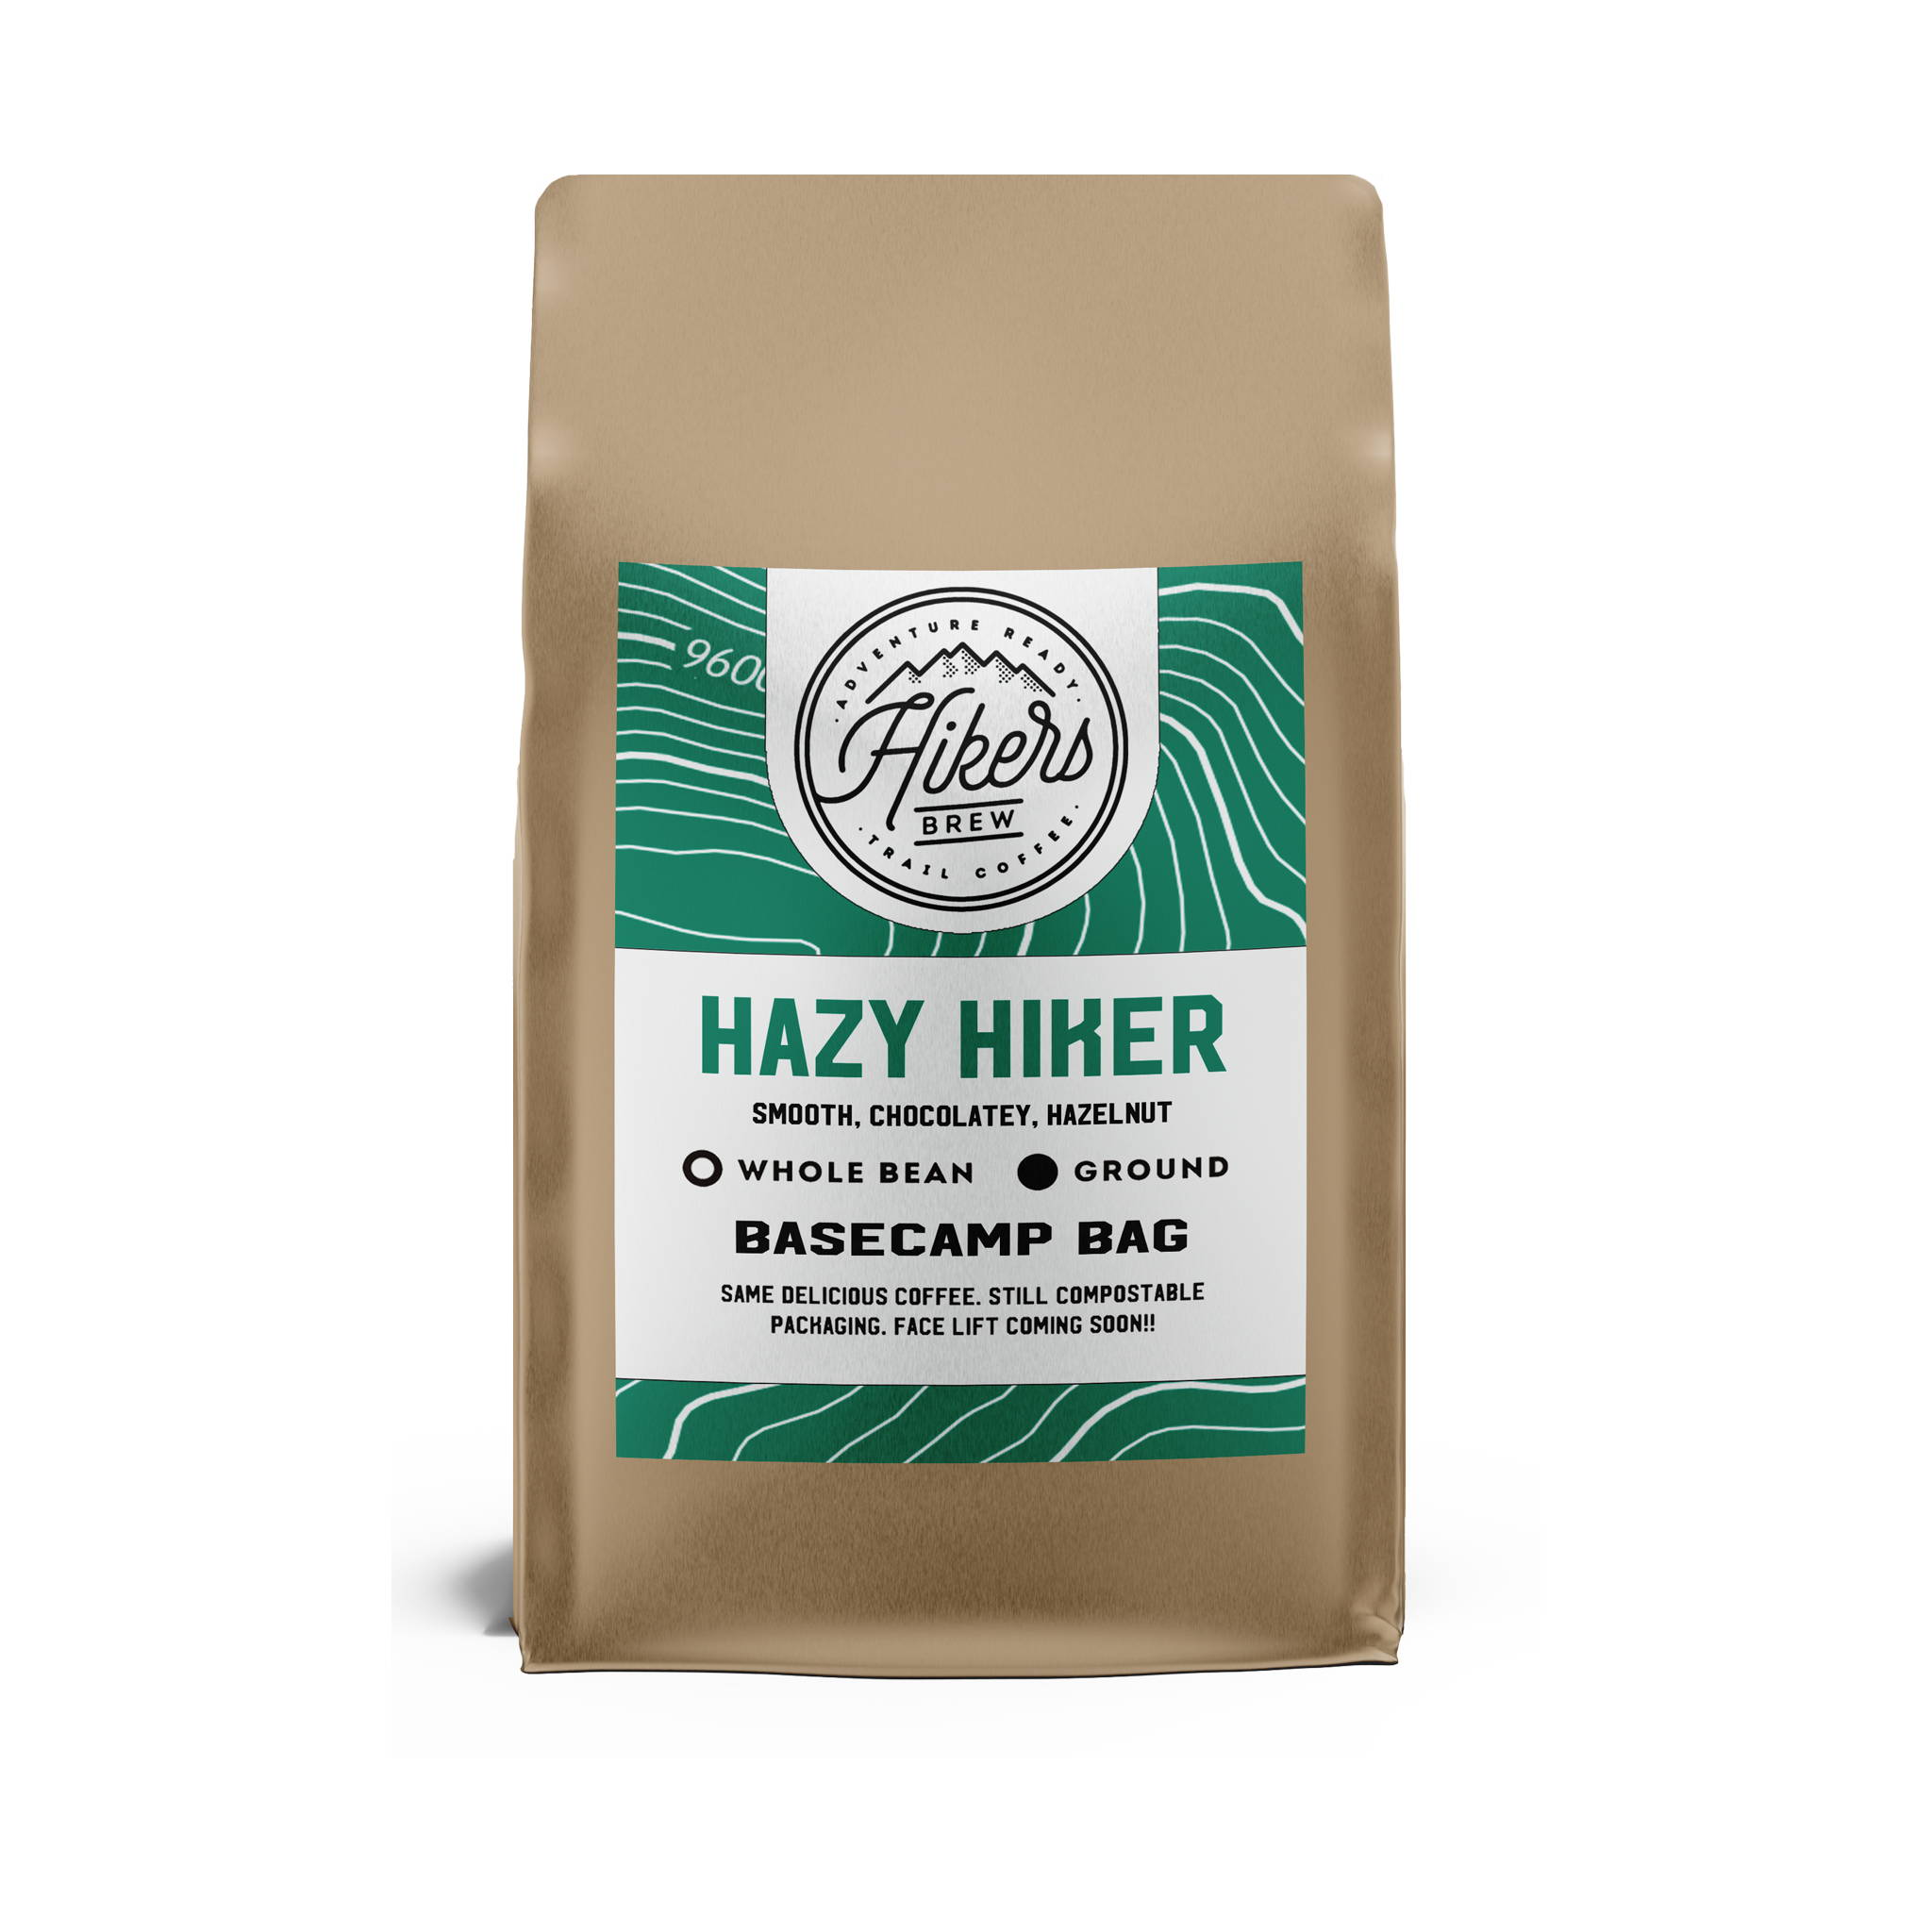 Hazy Hiker - Hazelnut Flavored Coffee - 12 oz.